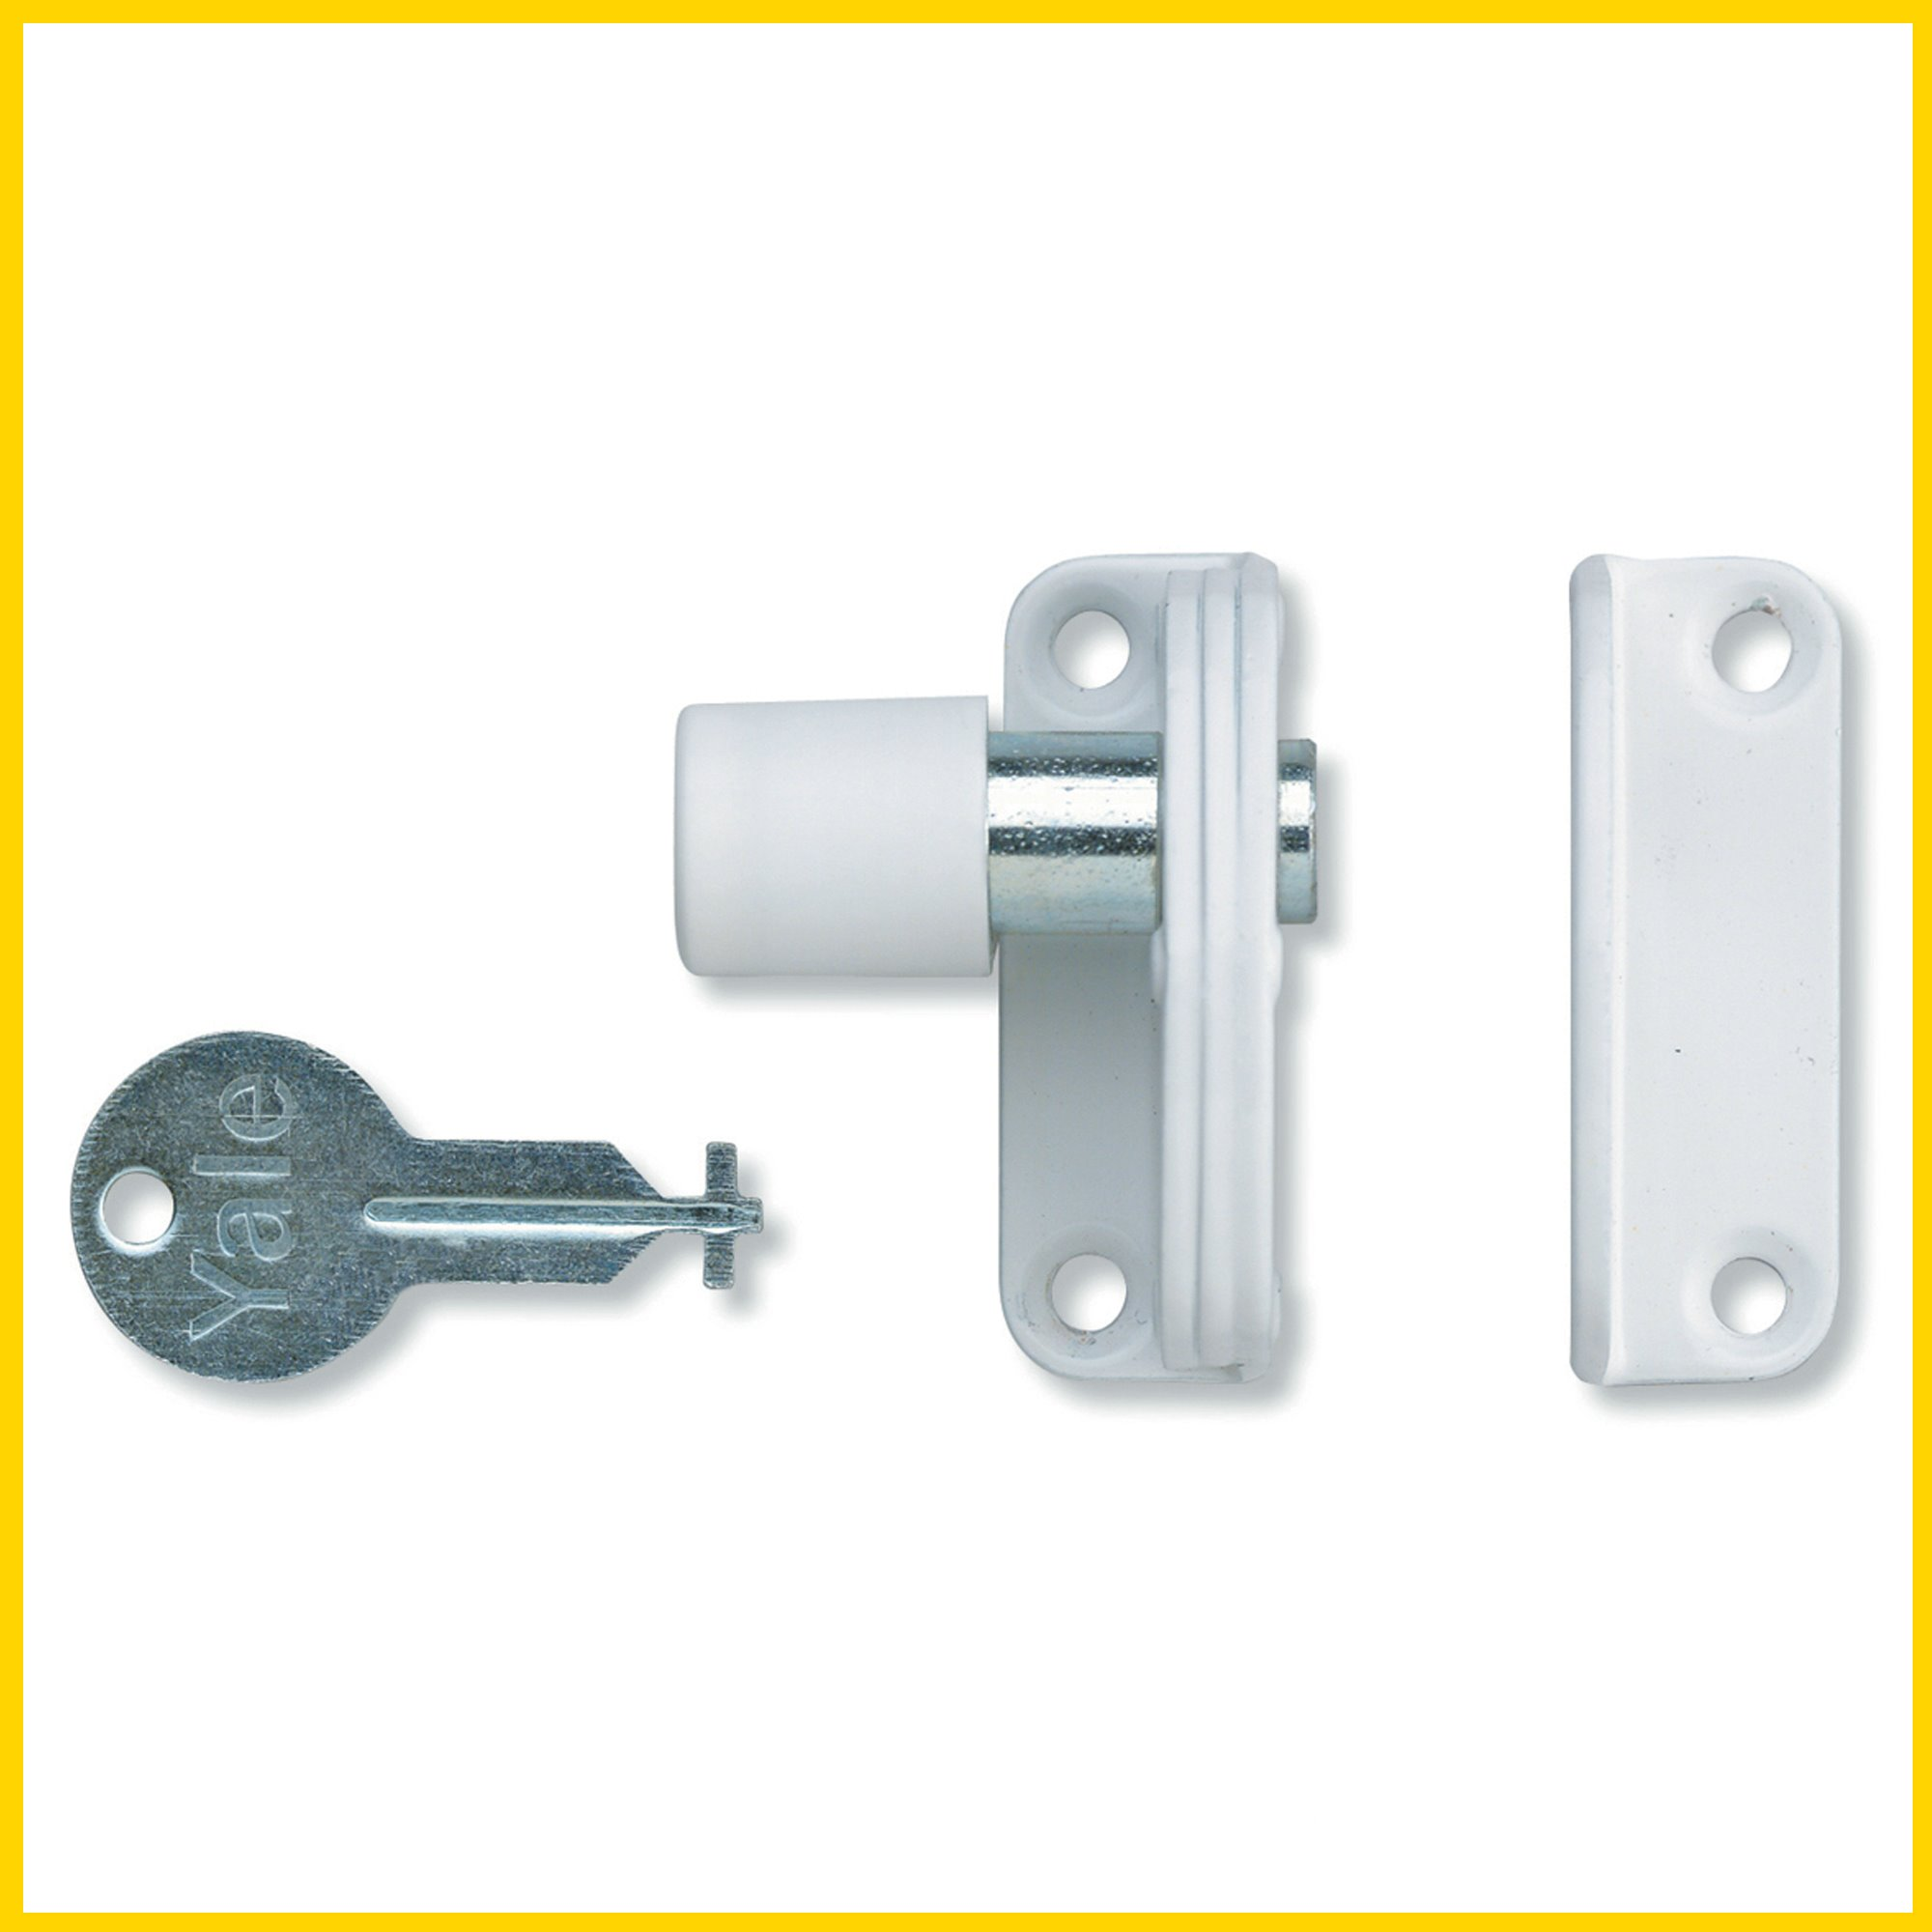 P123 - Sash Window Pressbolt